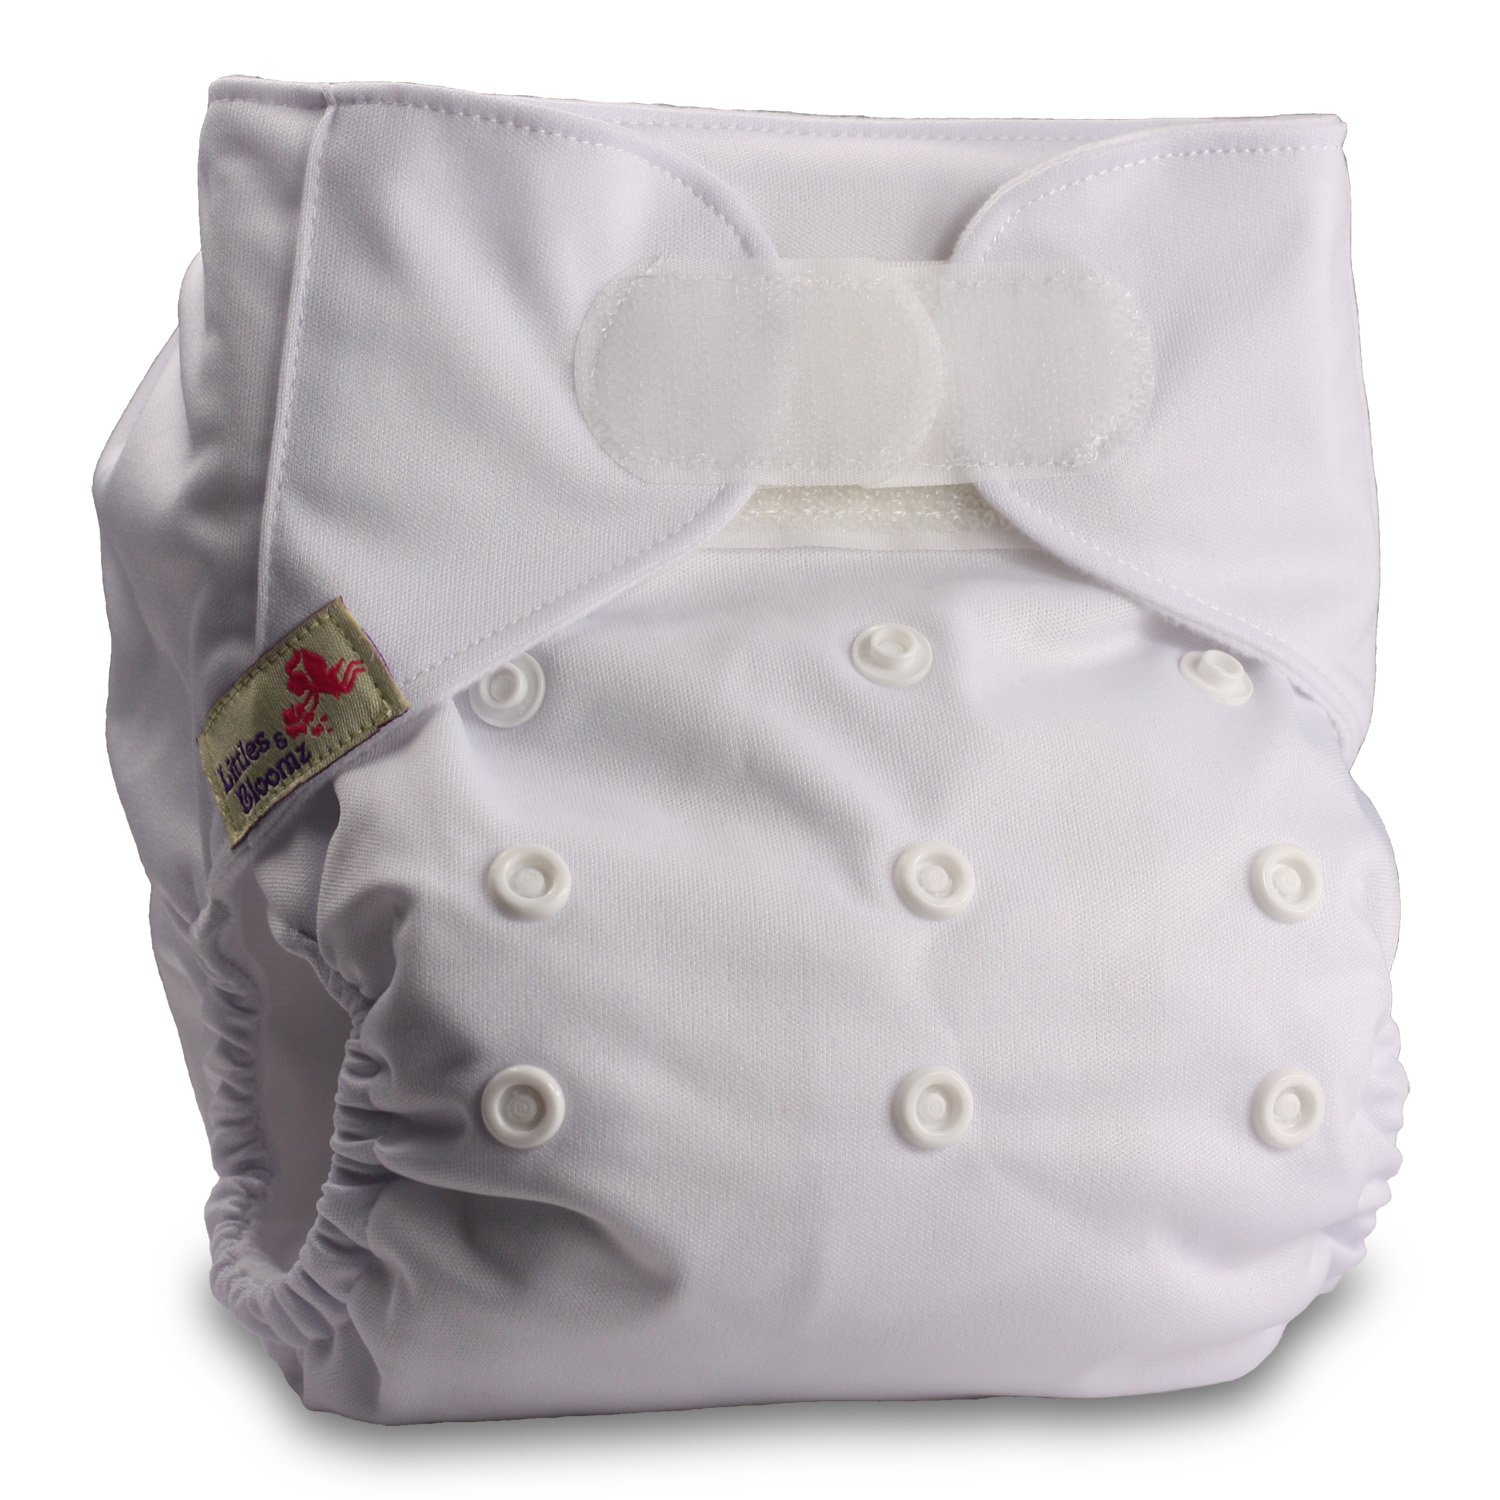 Fastener: Hook-Loop Reusable Pocket Cloth Nappy Set of 3 with 6 Bamboo Inserts Patterns 316 Littles /& Bloomz